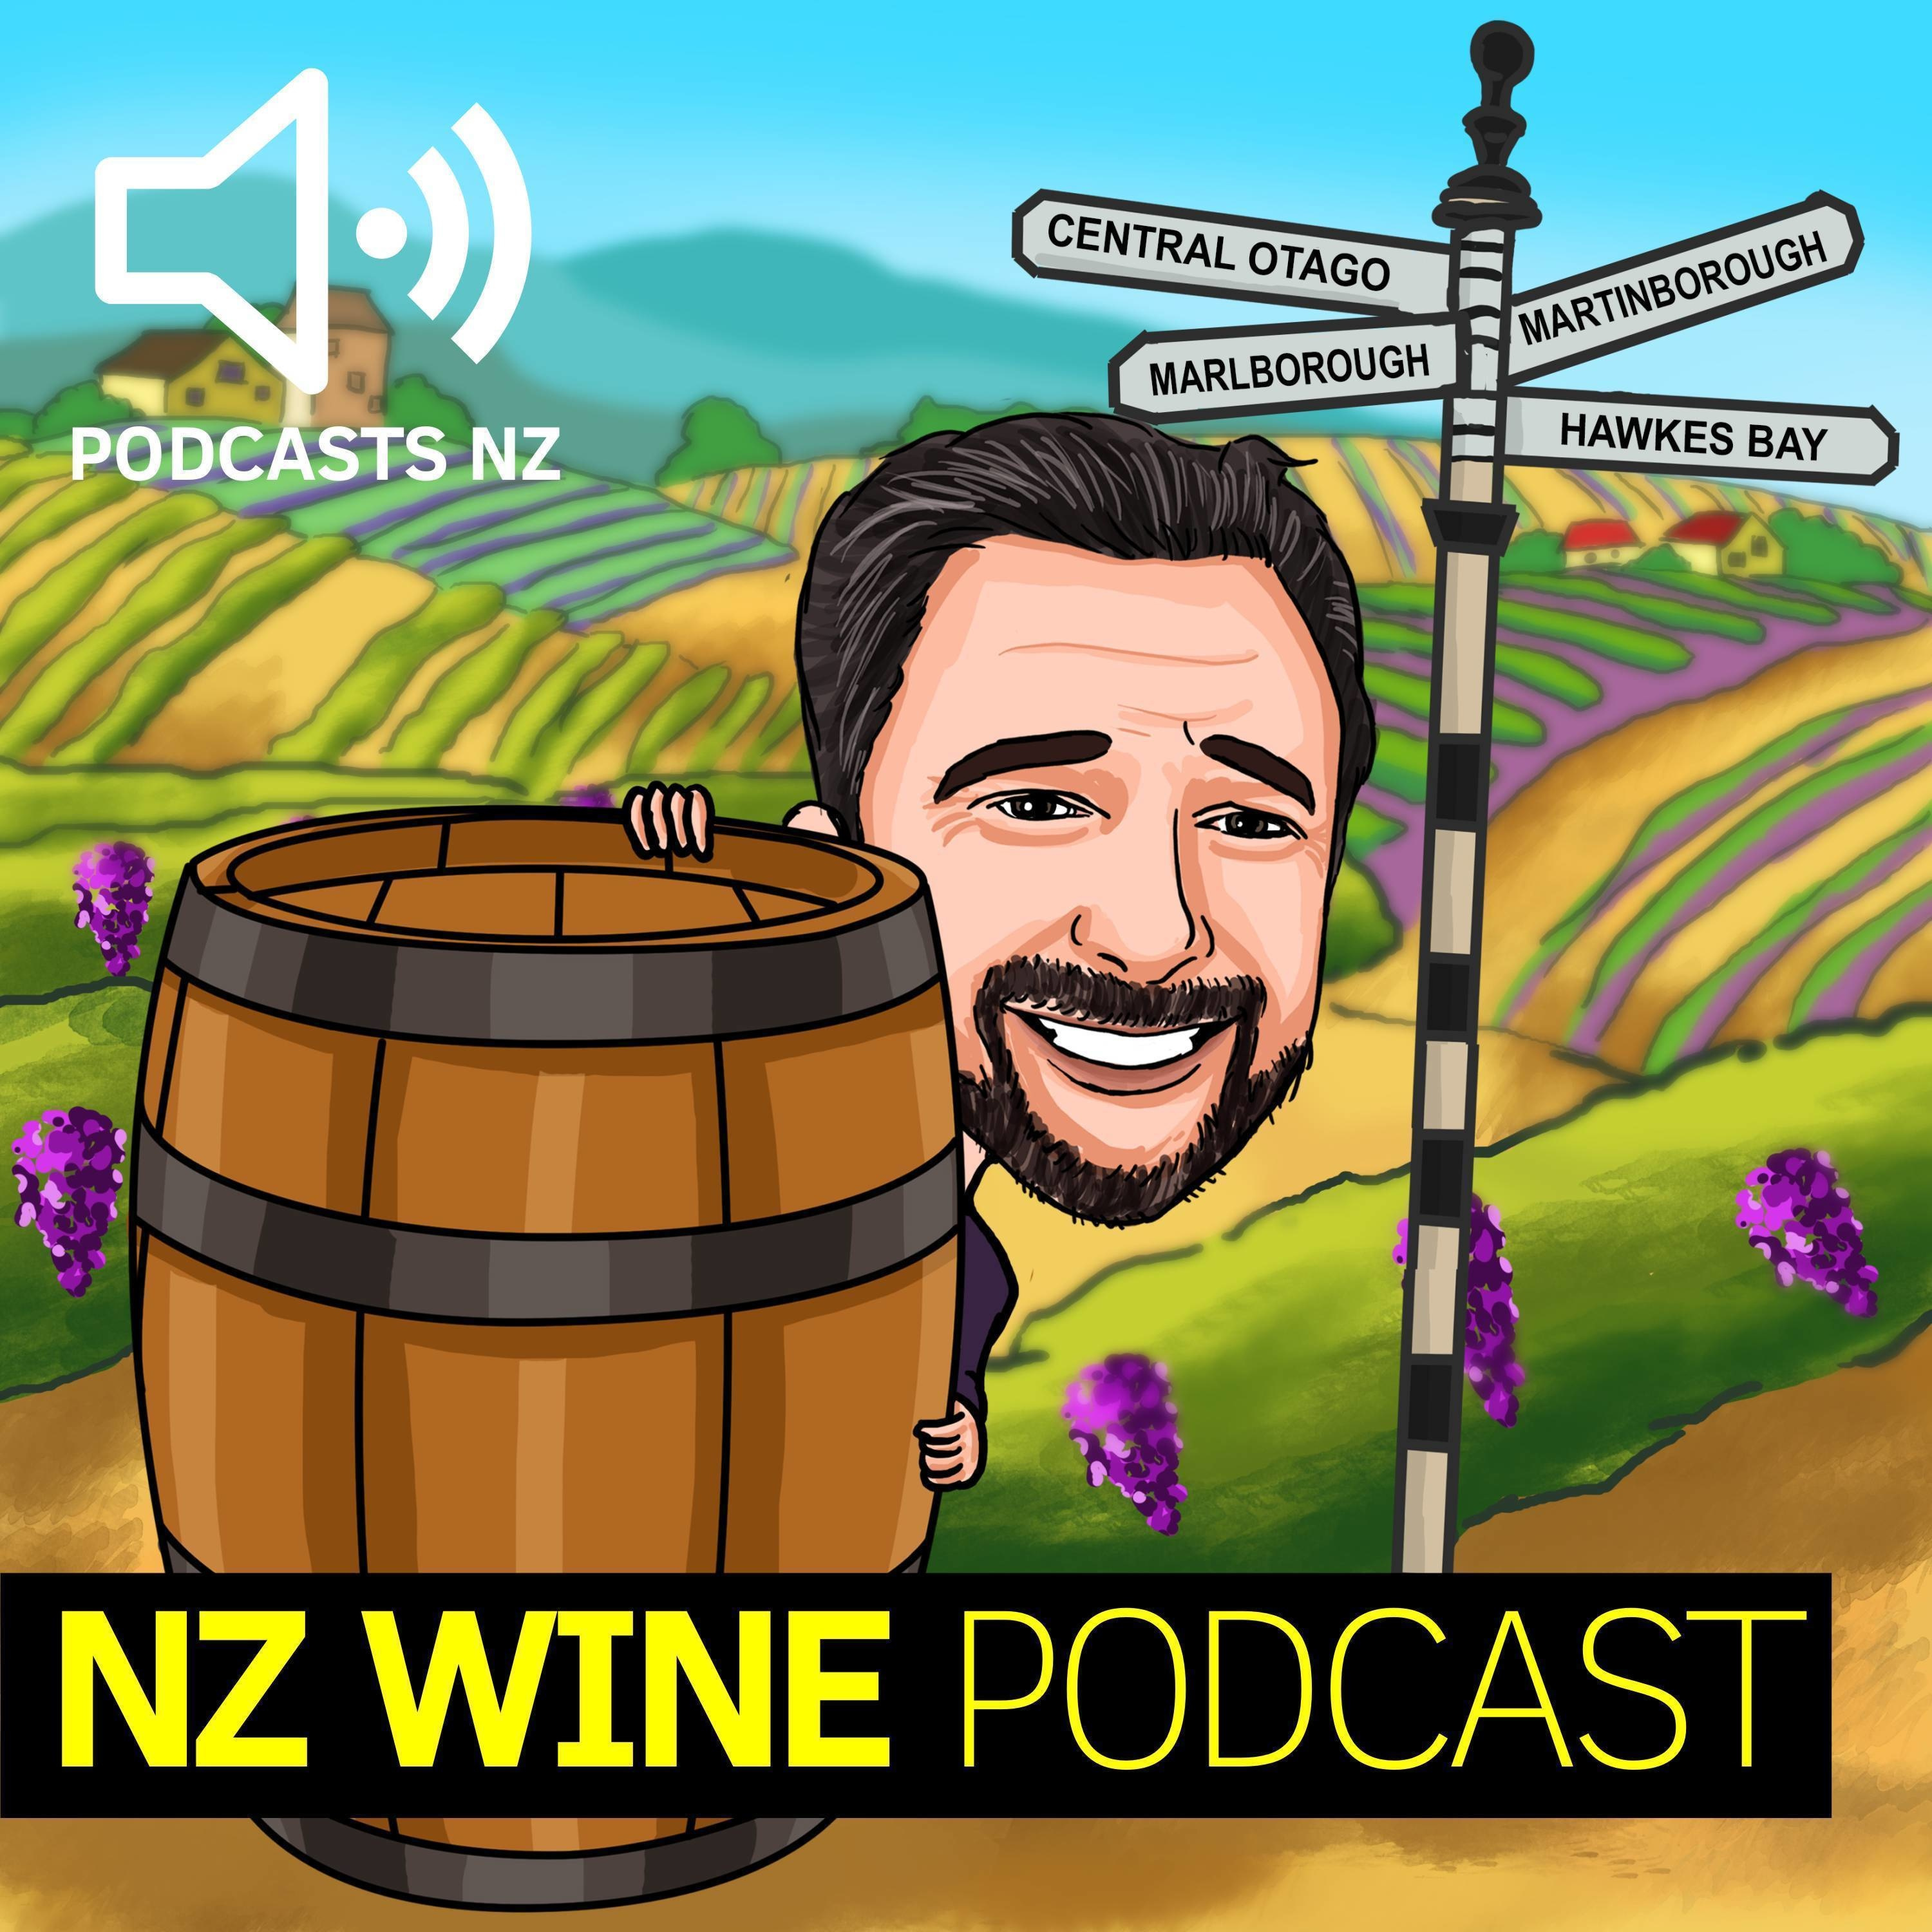 NZ Wine Podcast 39: Rhone - Part 2